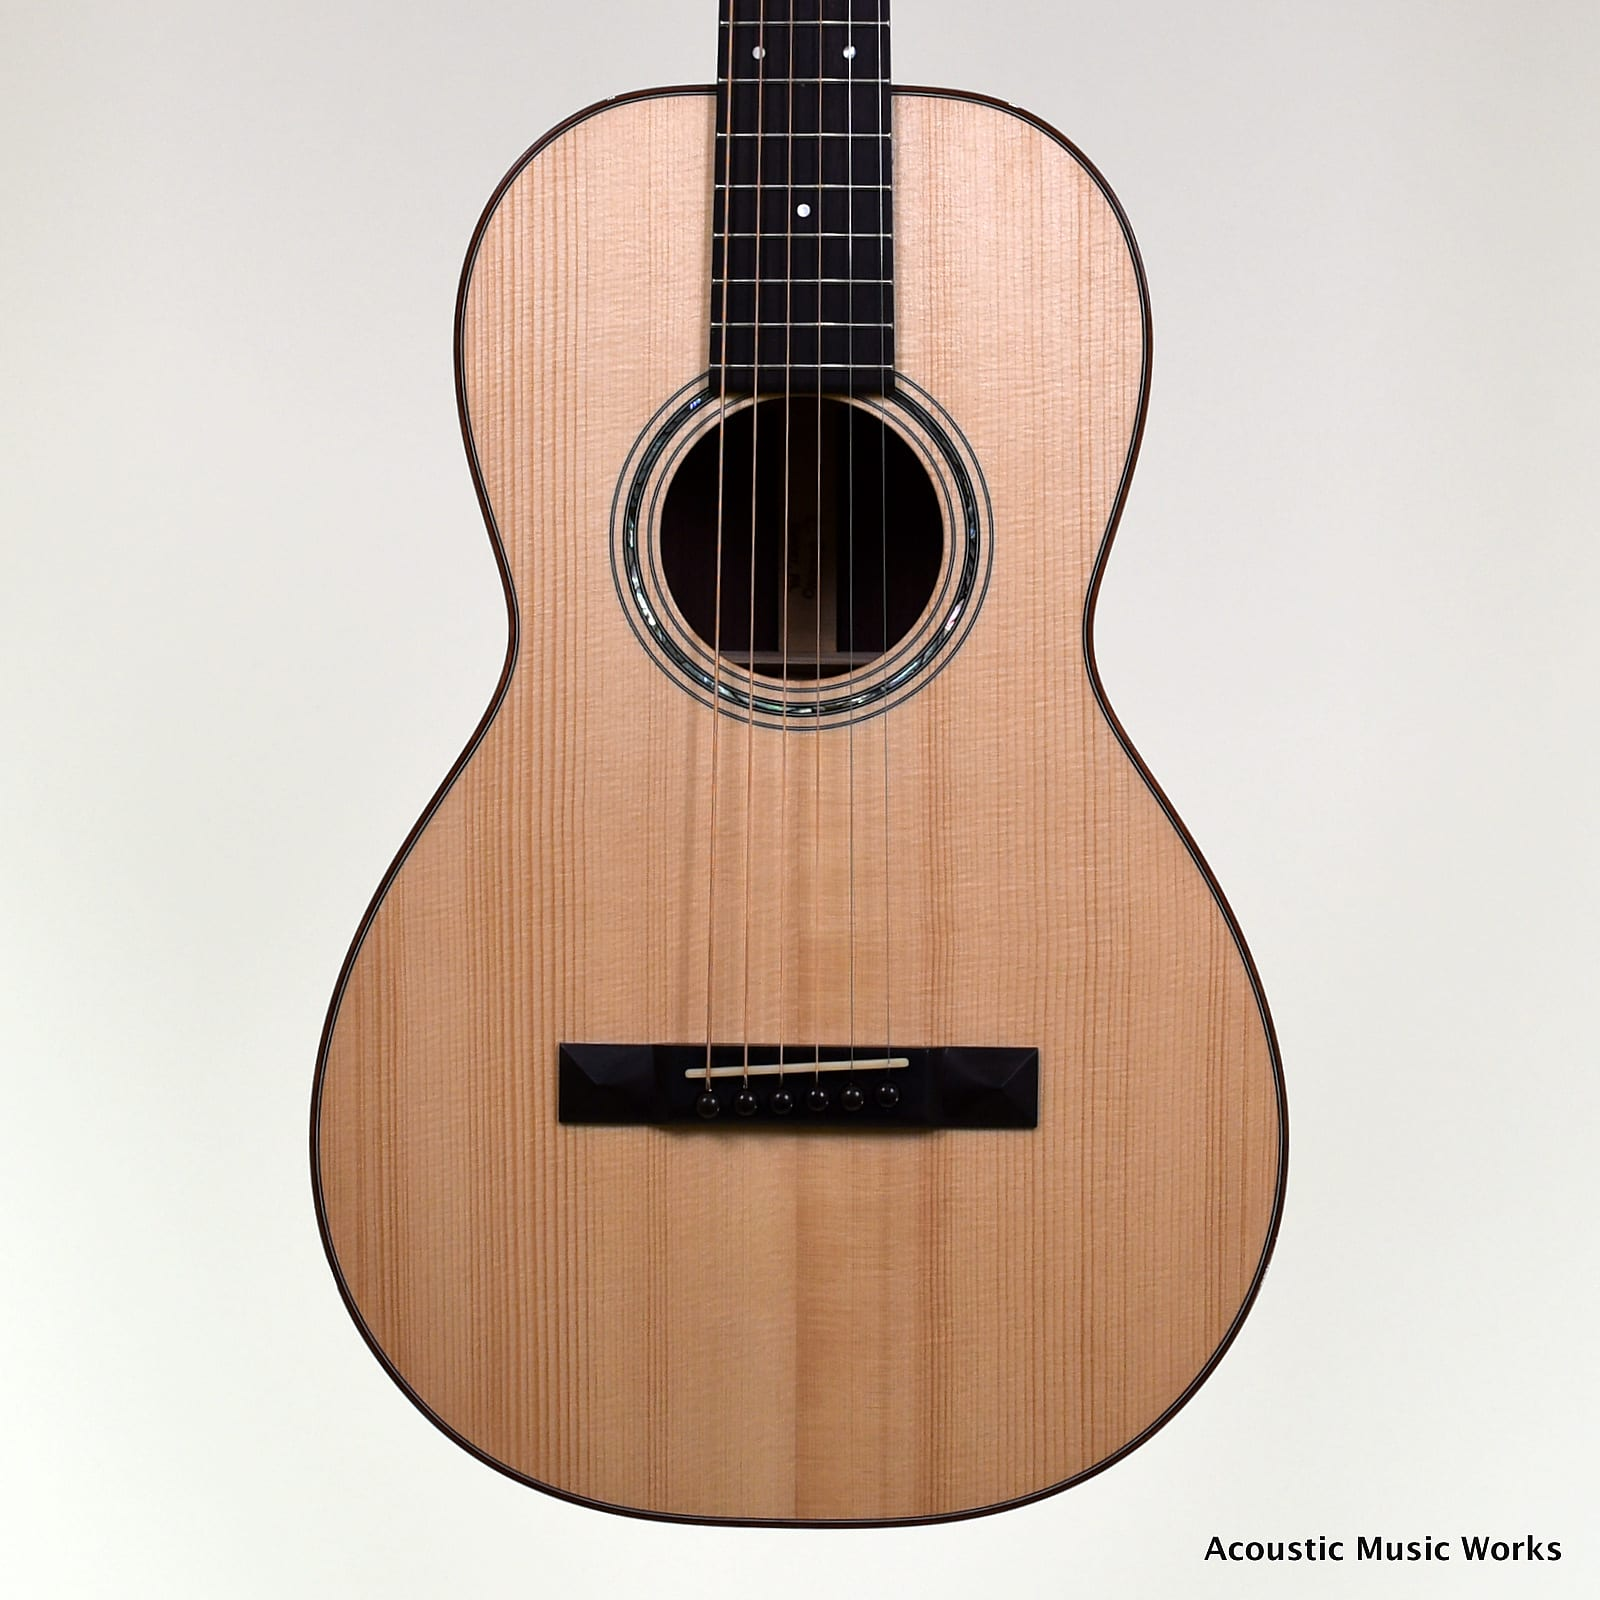 Baleno Size 2 Parlor, Adirondack Spruce, Indian Rosewood - VIDEO